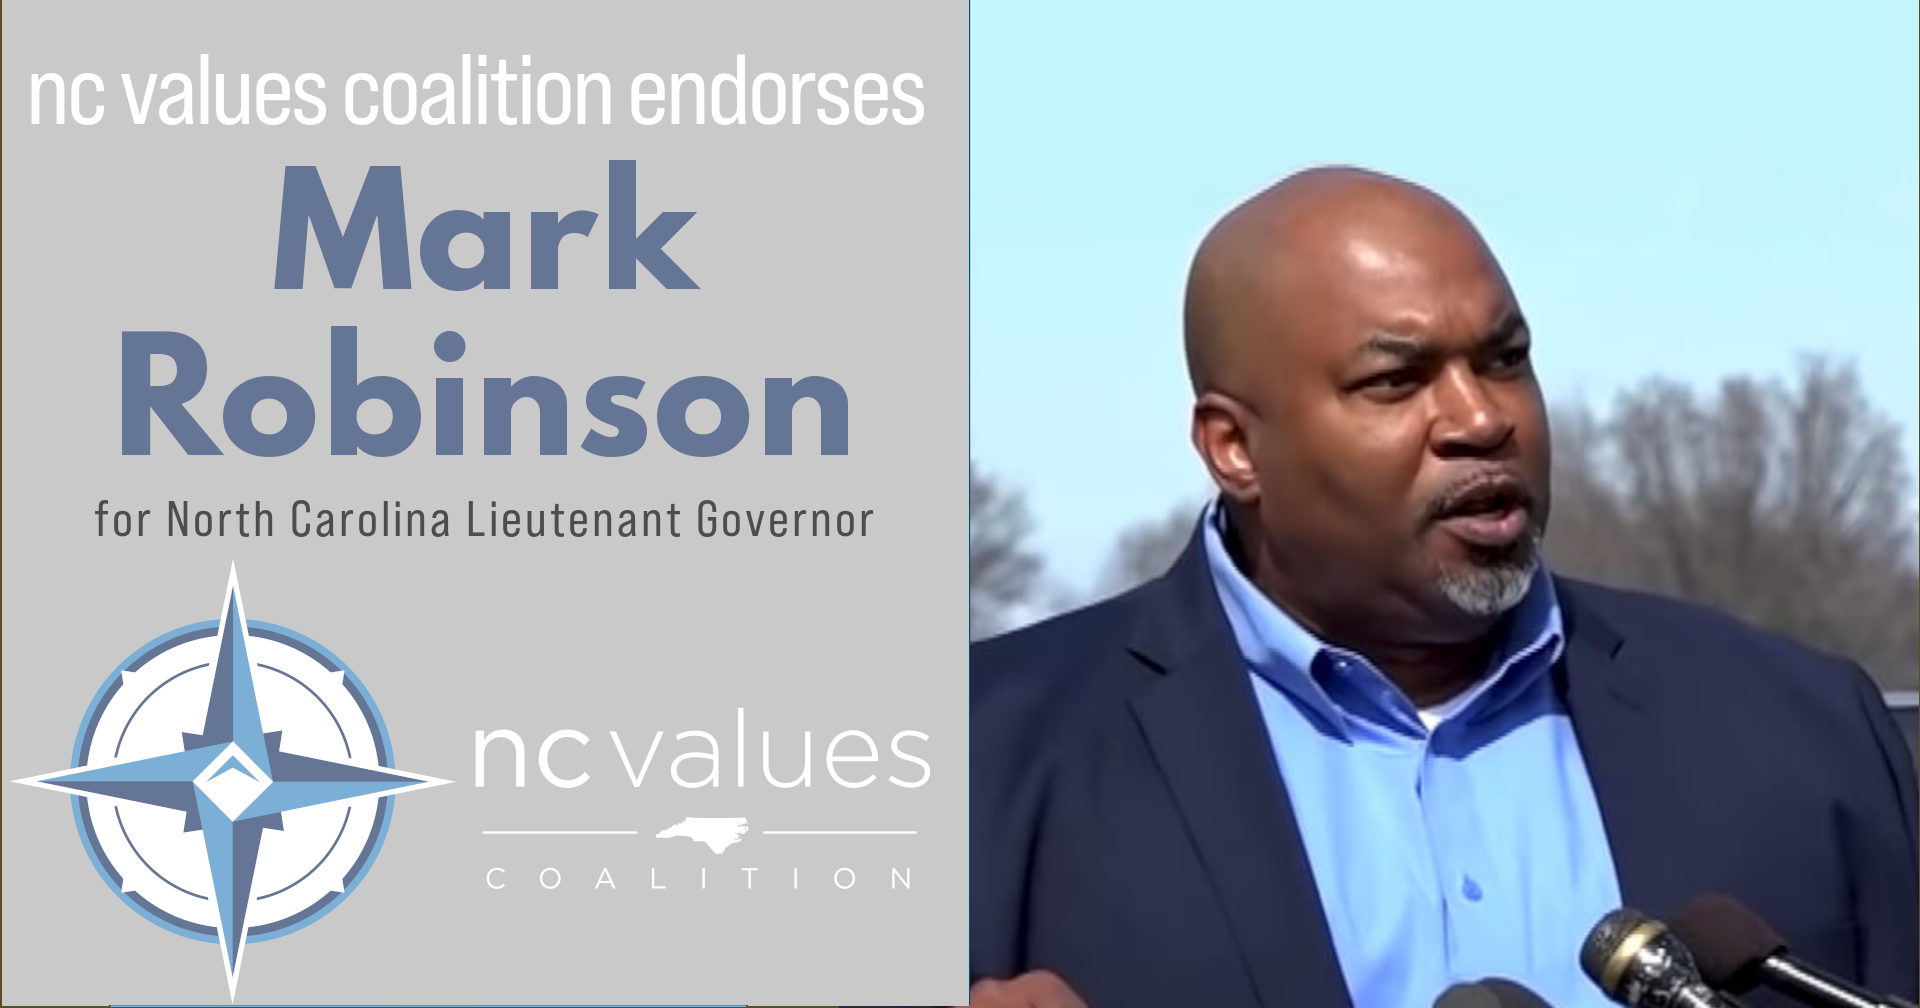 Mark Robinson for Lt Governor